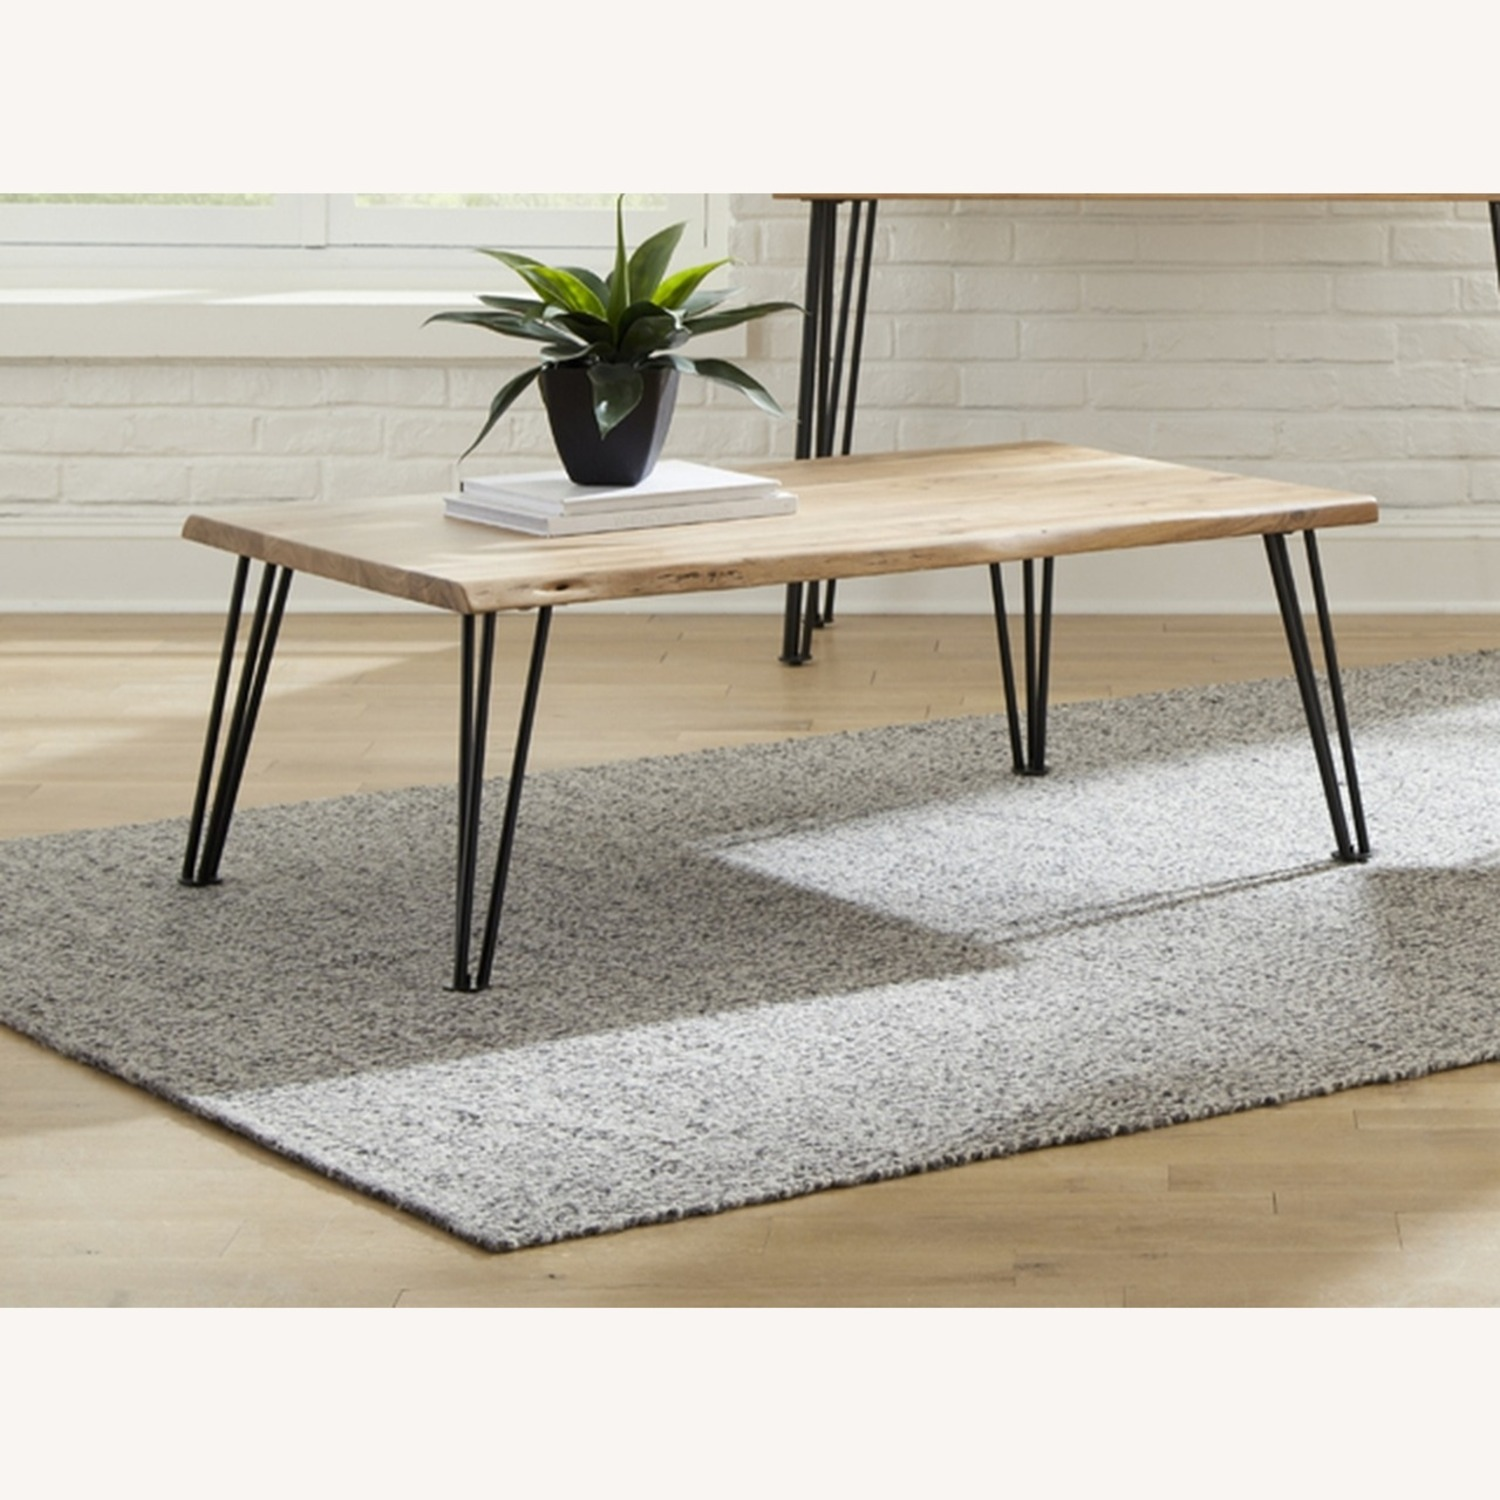 Coffee Table In Natural Acacia Wood Finish - image-1